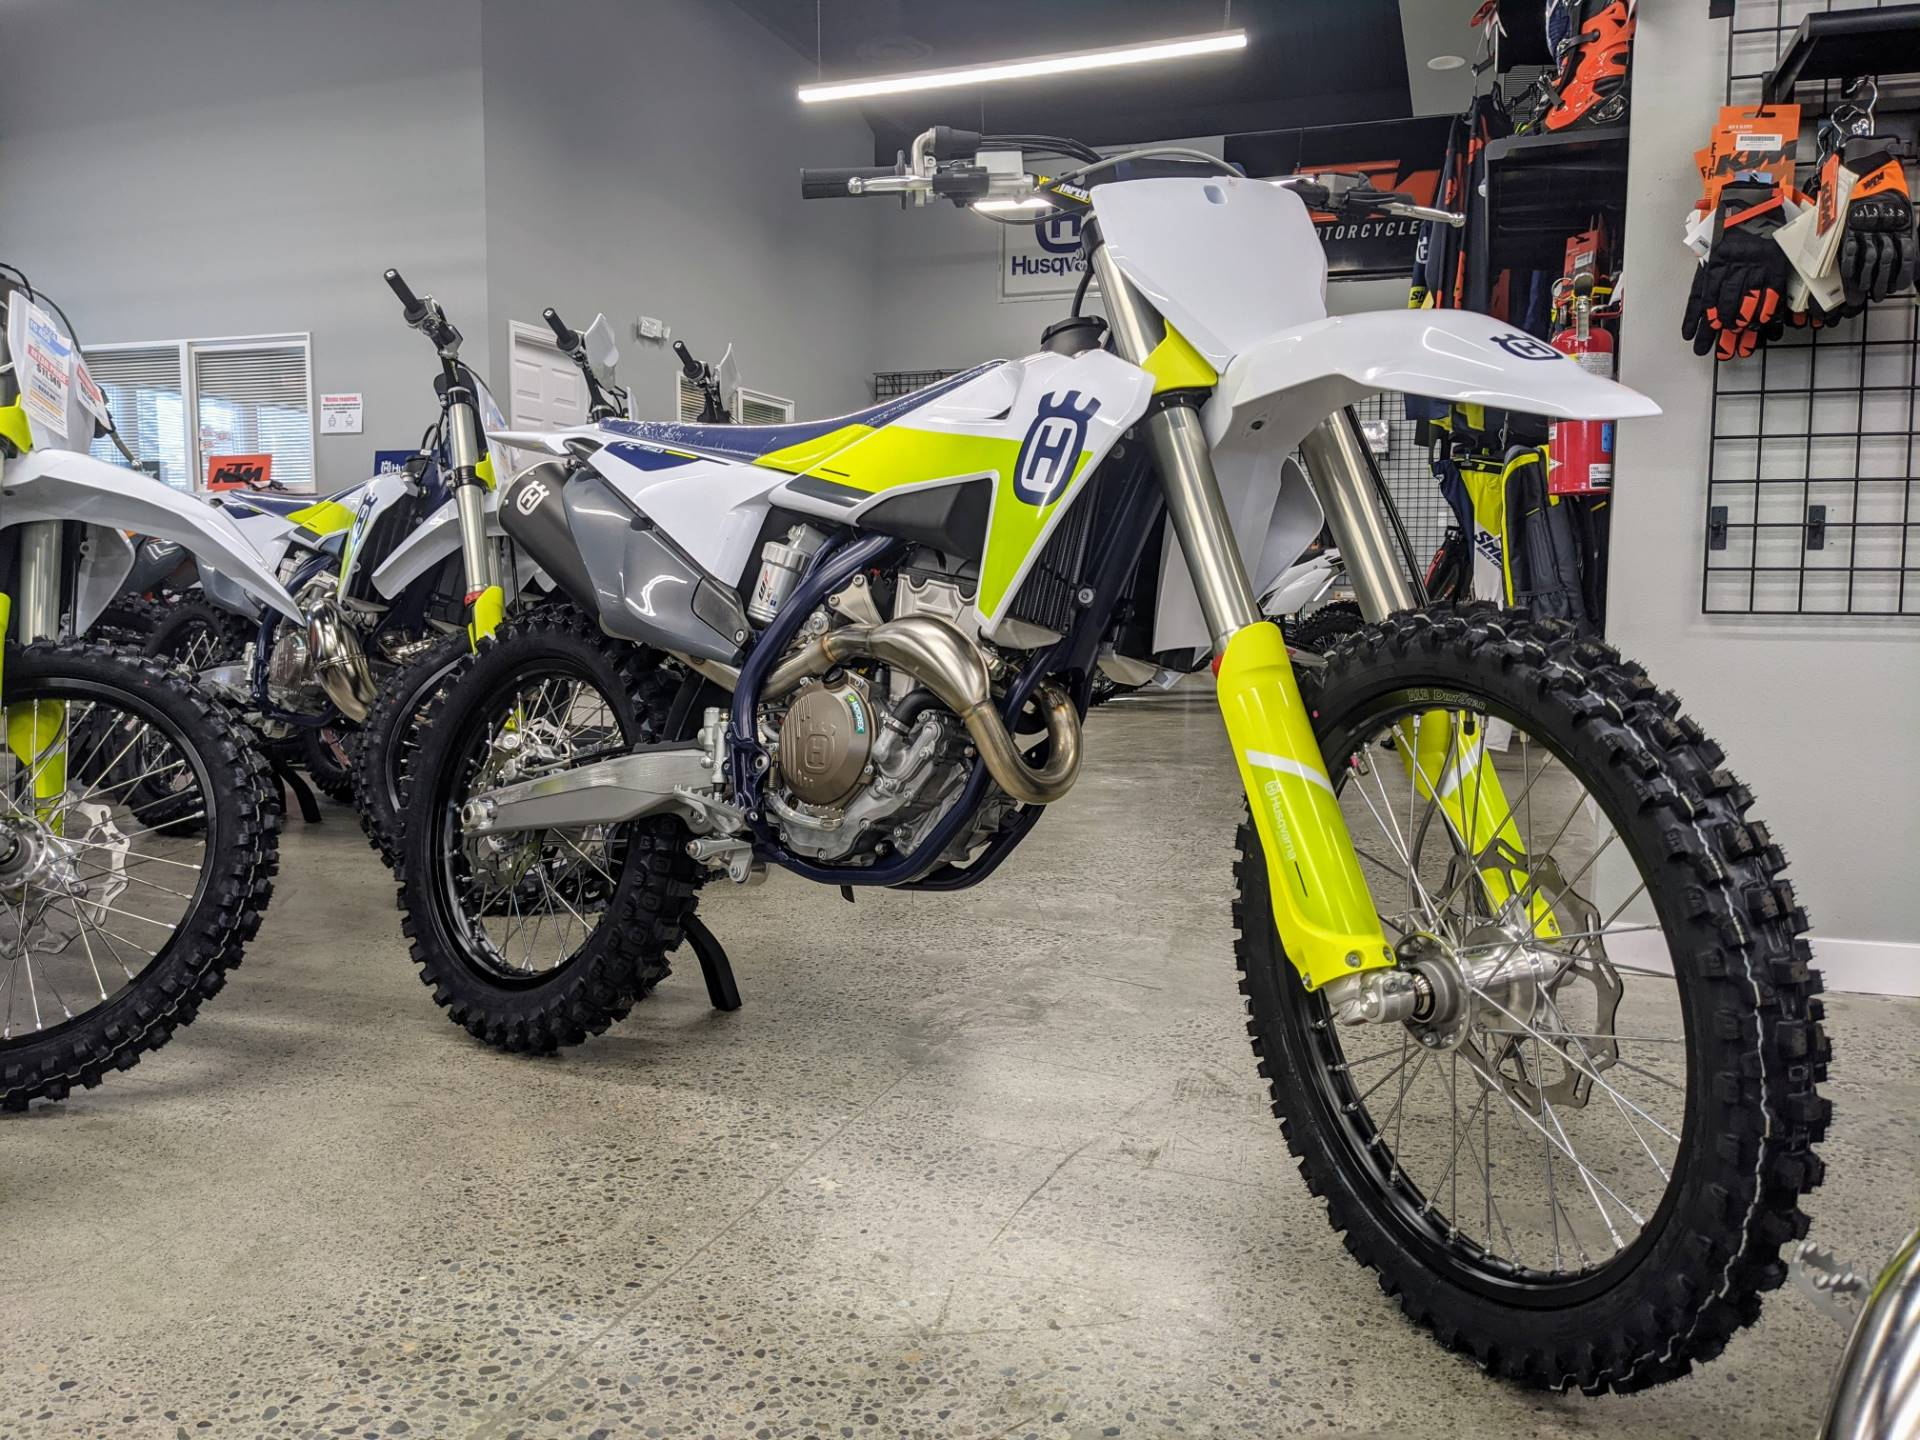 2021 Husqvarna FC 350 in Gresham, Oregon - Photo 2